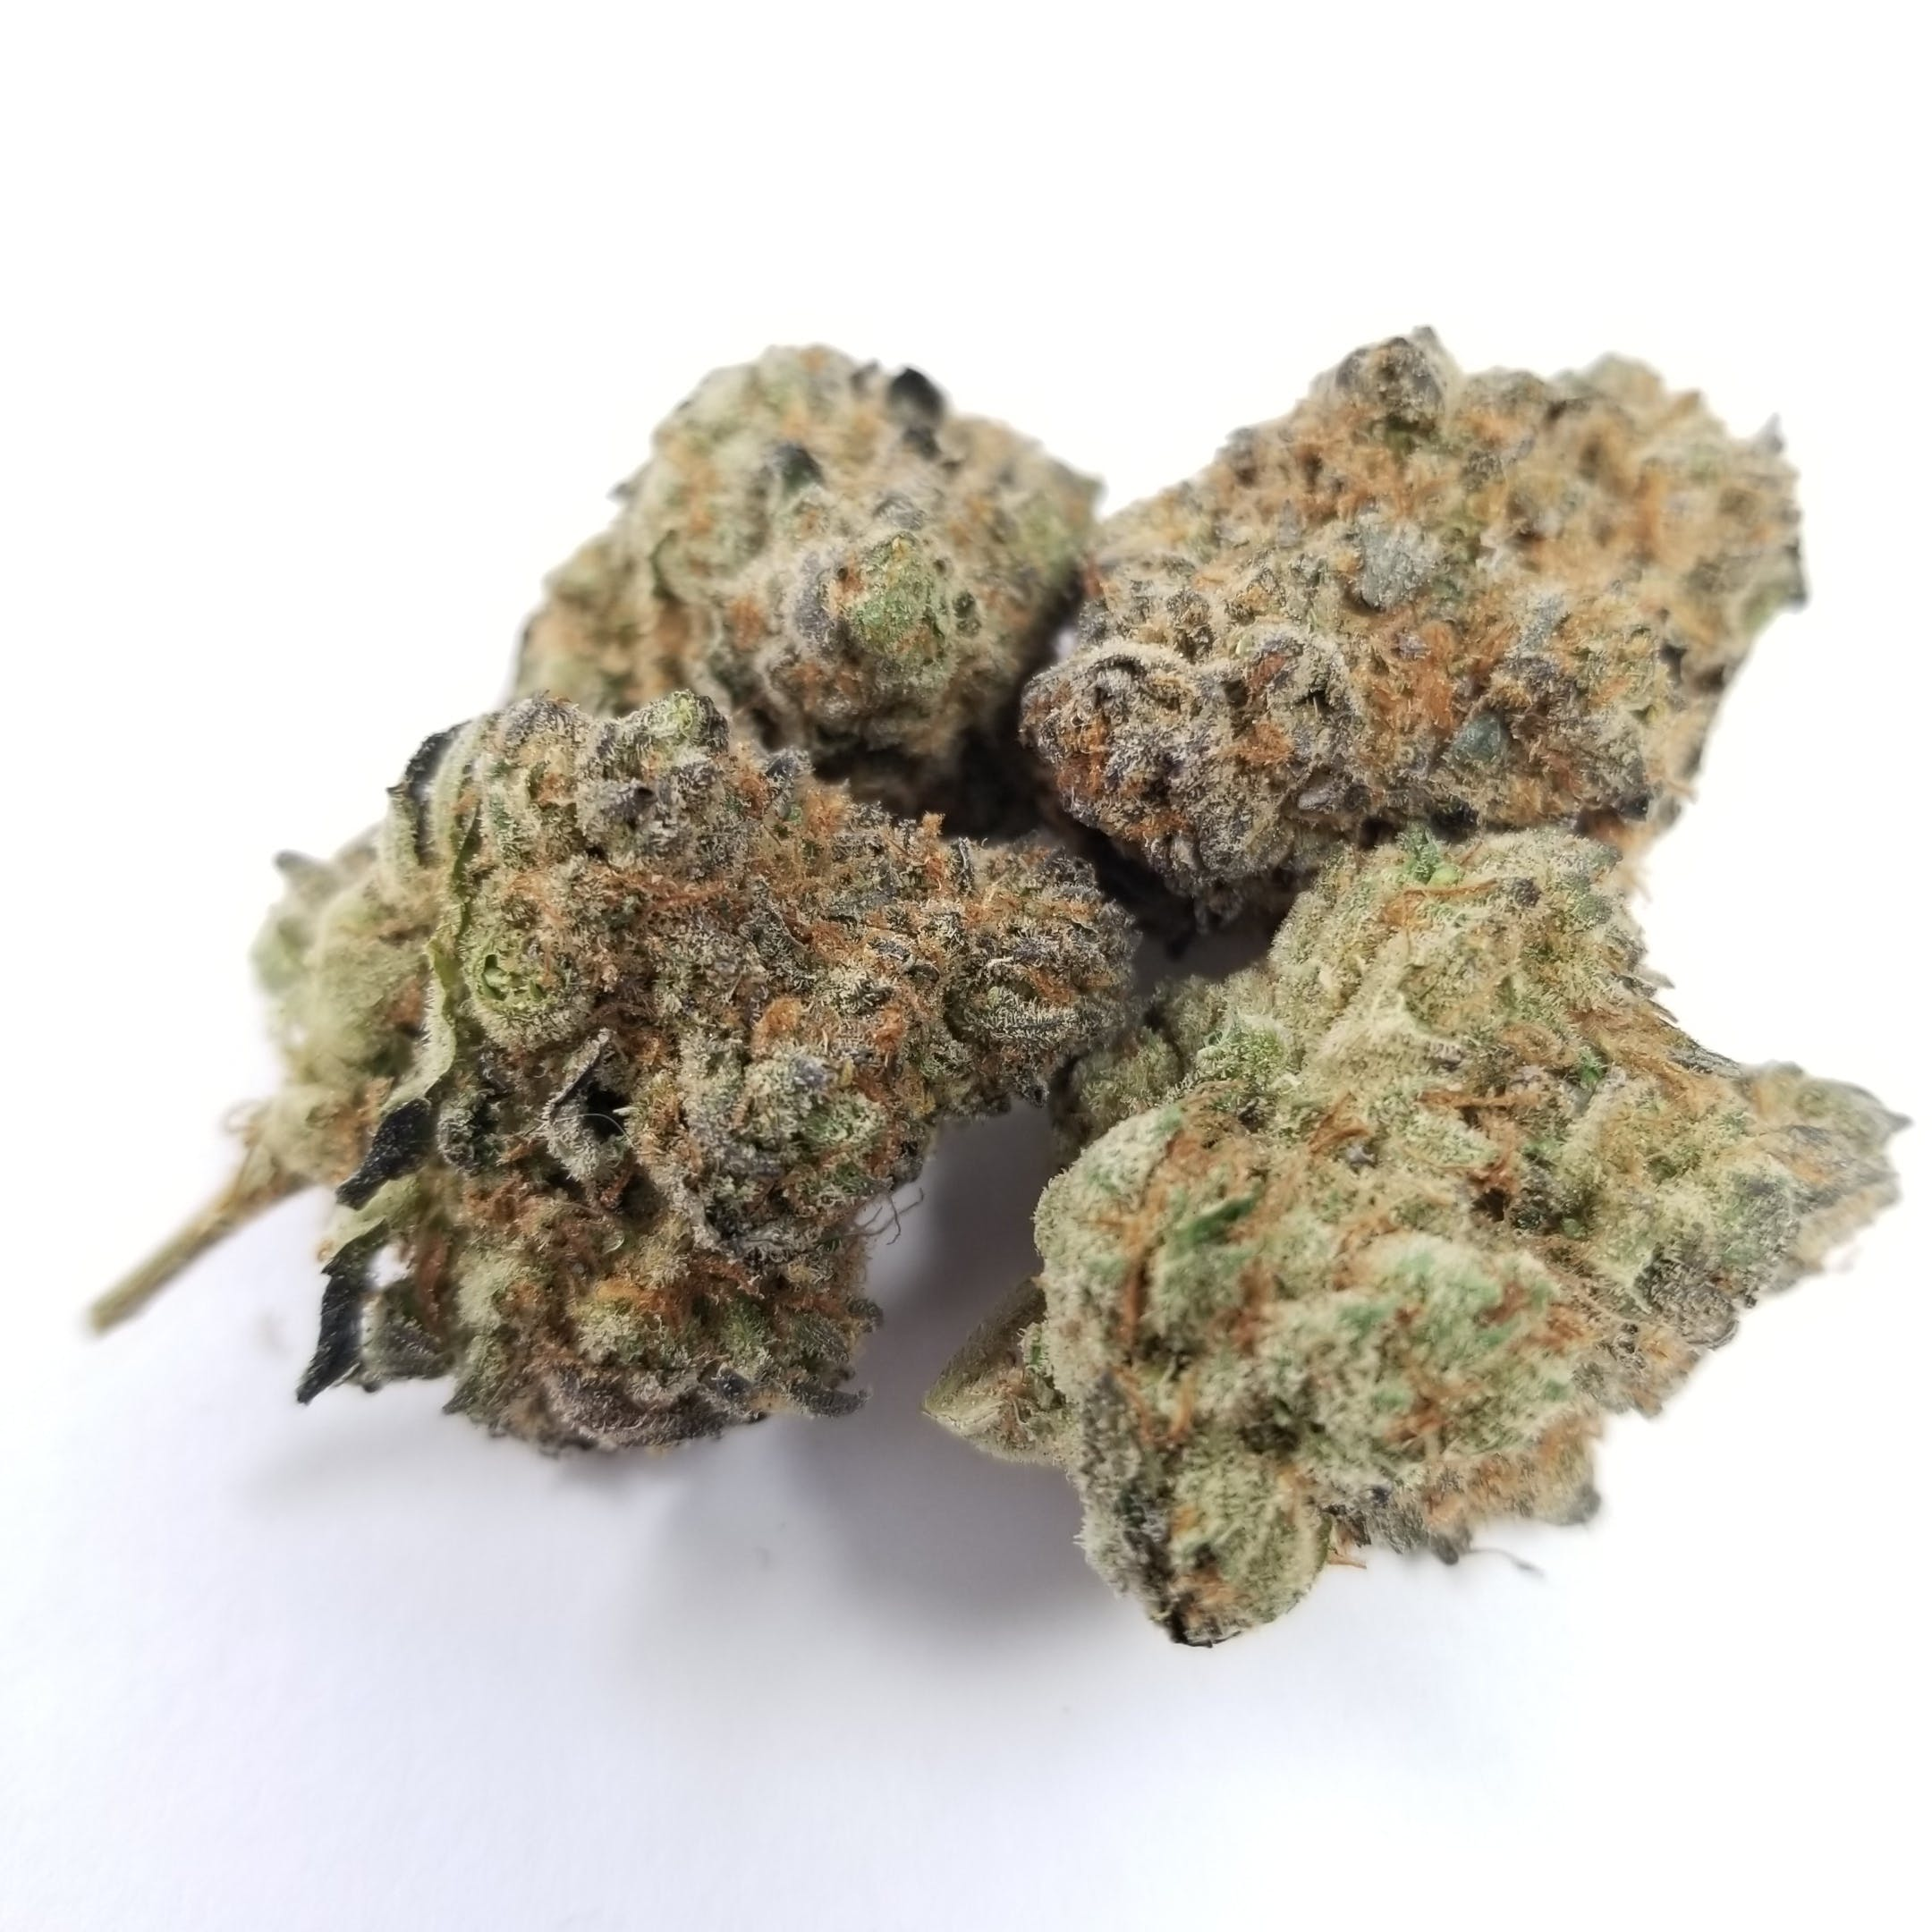 marijuana-dispensaries-27585-commerce-center-drive-2c-suite-a-temecula-2410-special-cherry-cookies